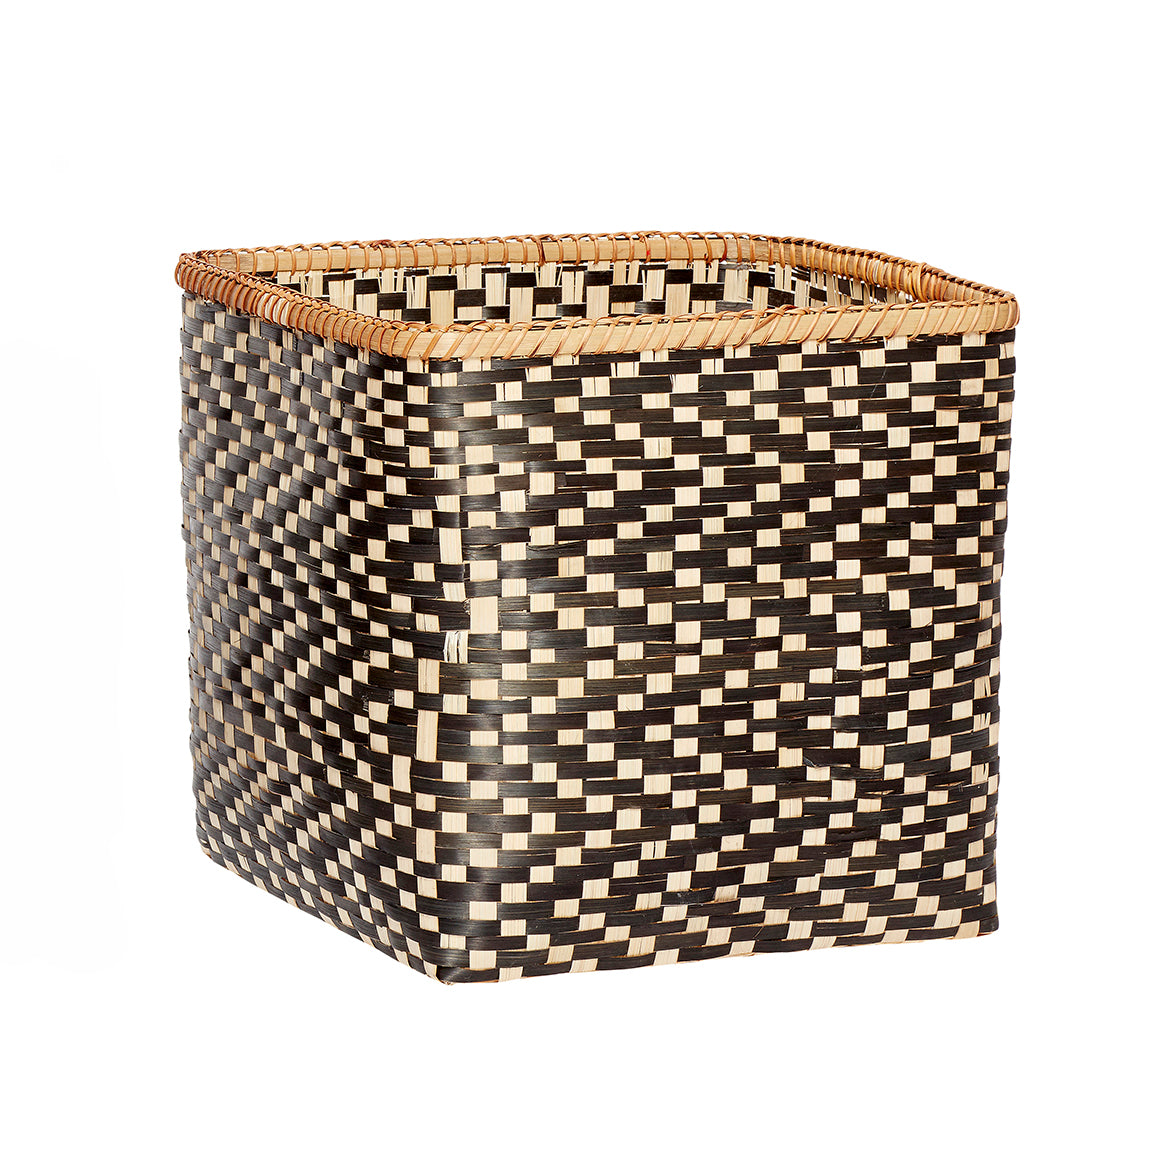 Black and Natural Bamboo Woven Square Basket in Large Size